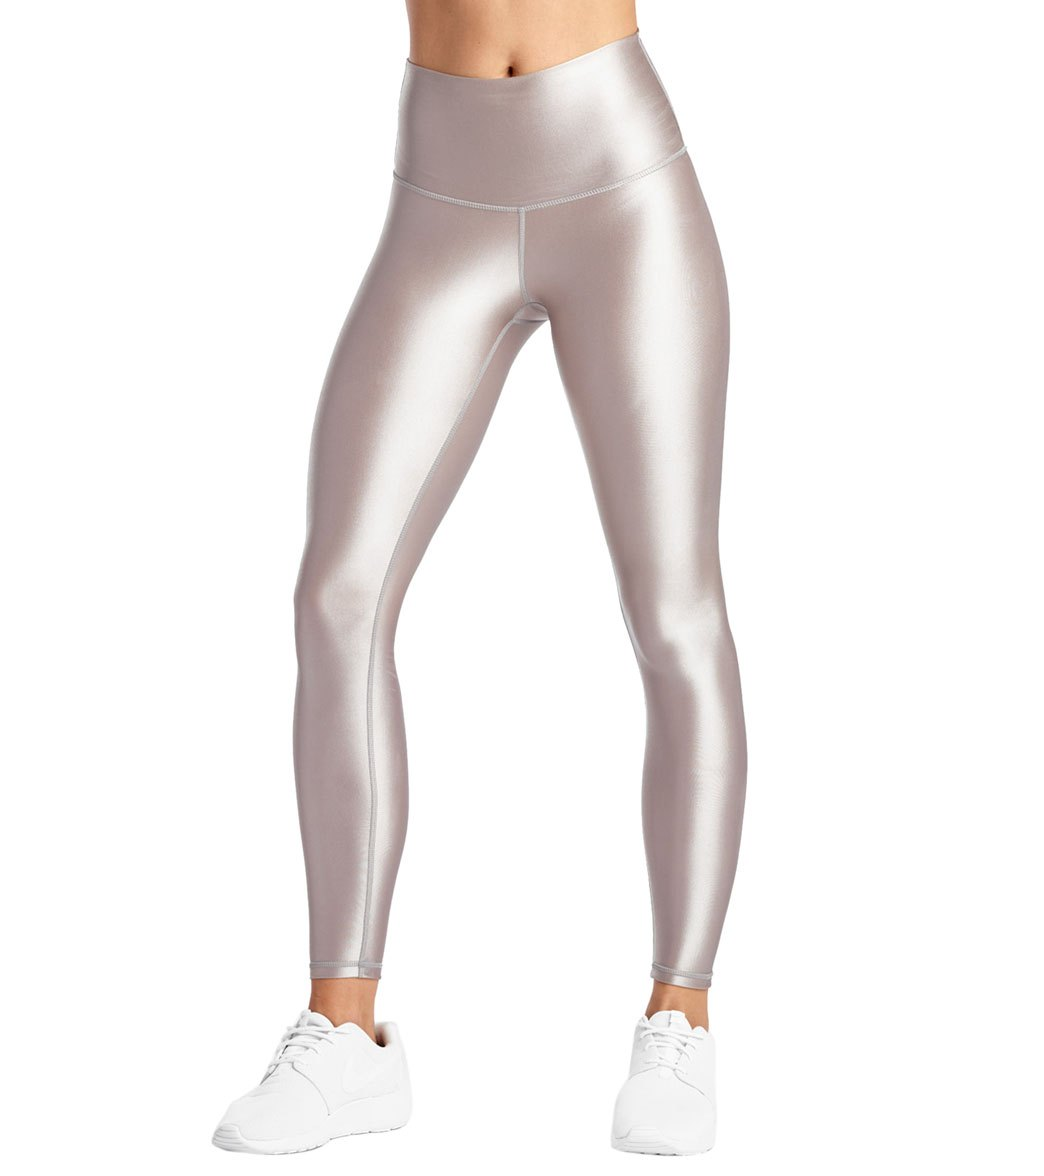 48197cfe9c DYI High Waisted Shine Signature Yoga Leggings at YogaOutlet.com ...